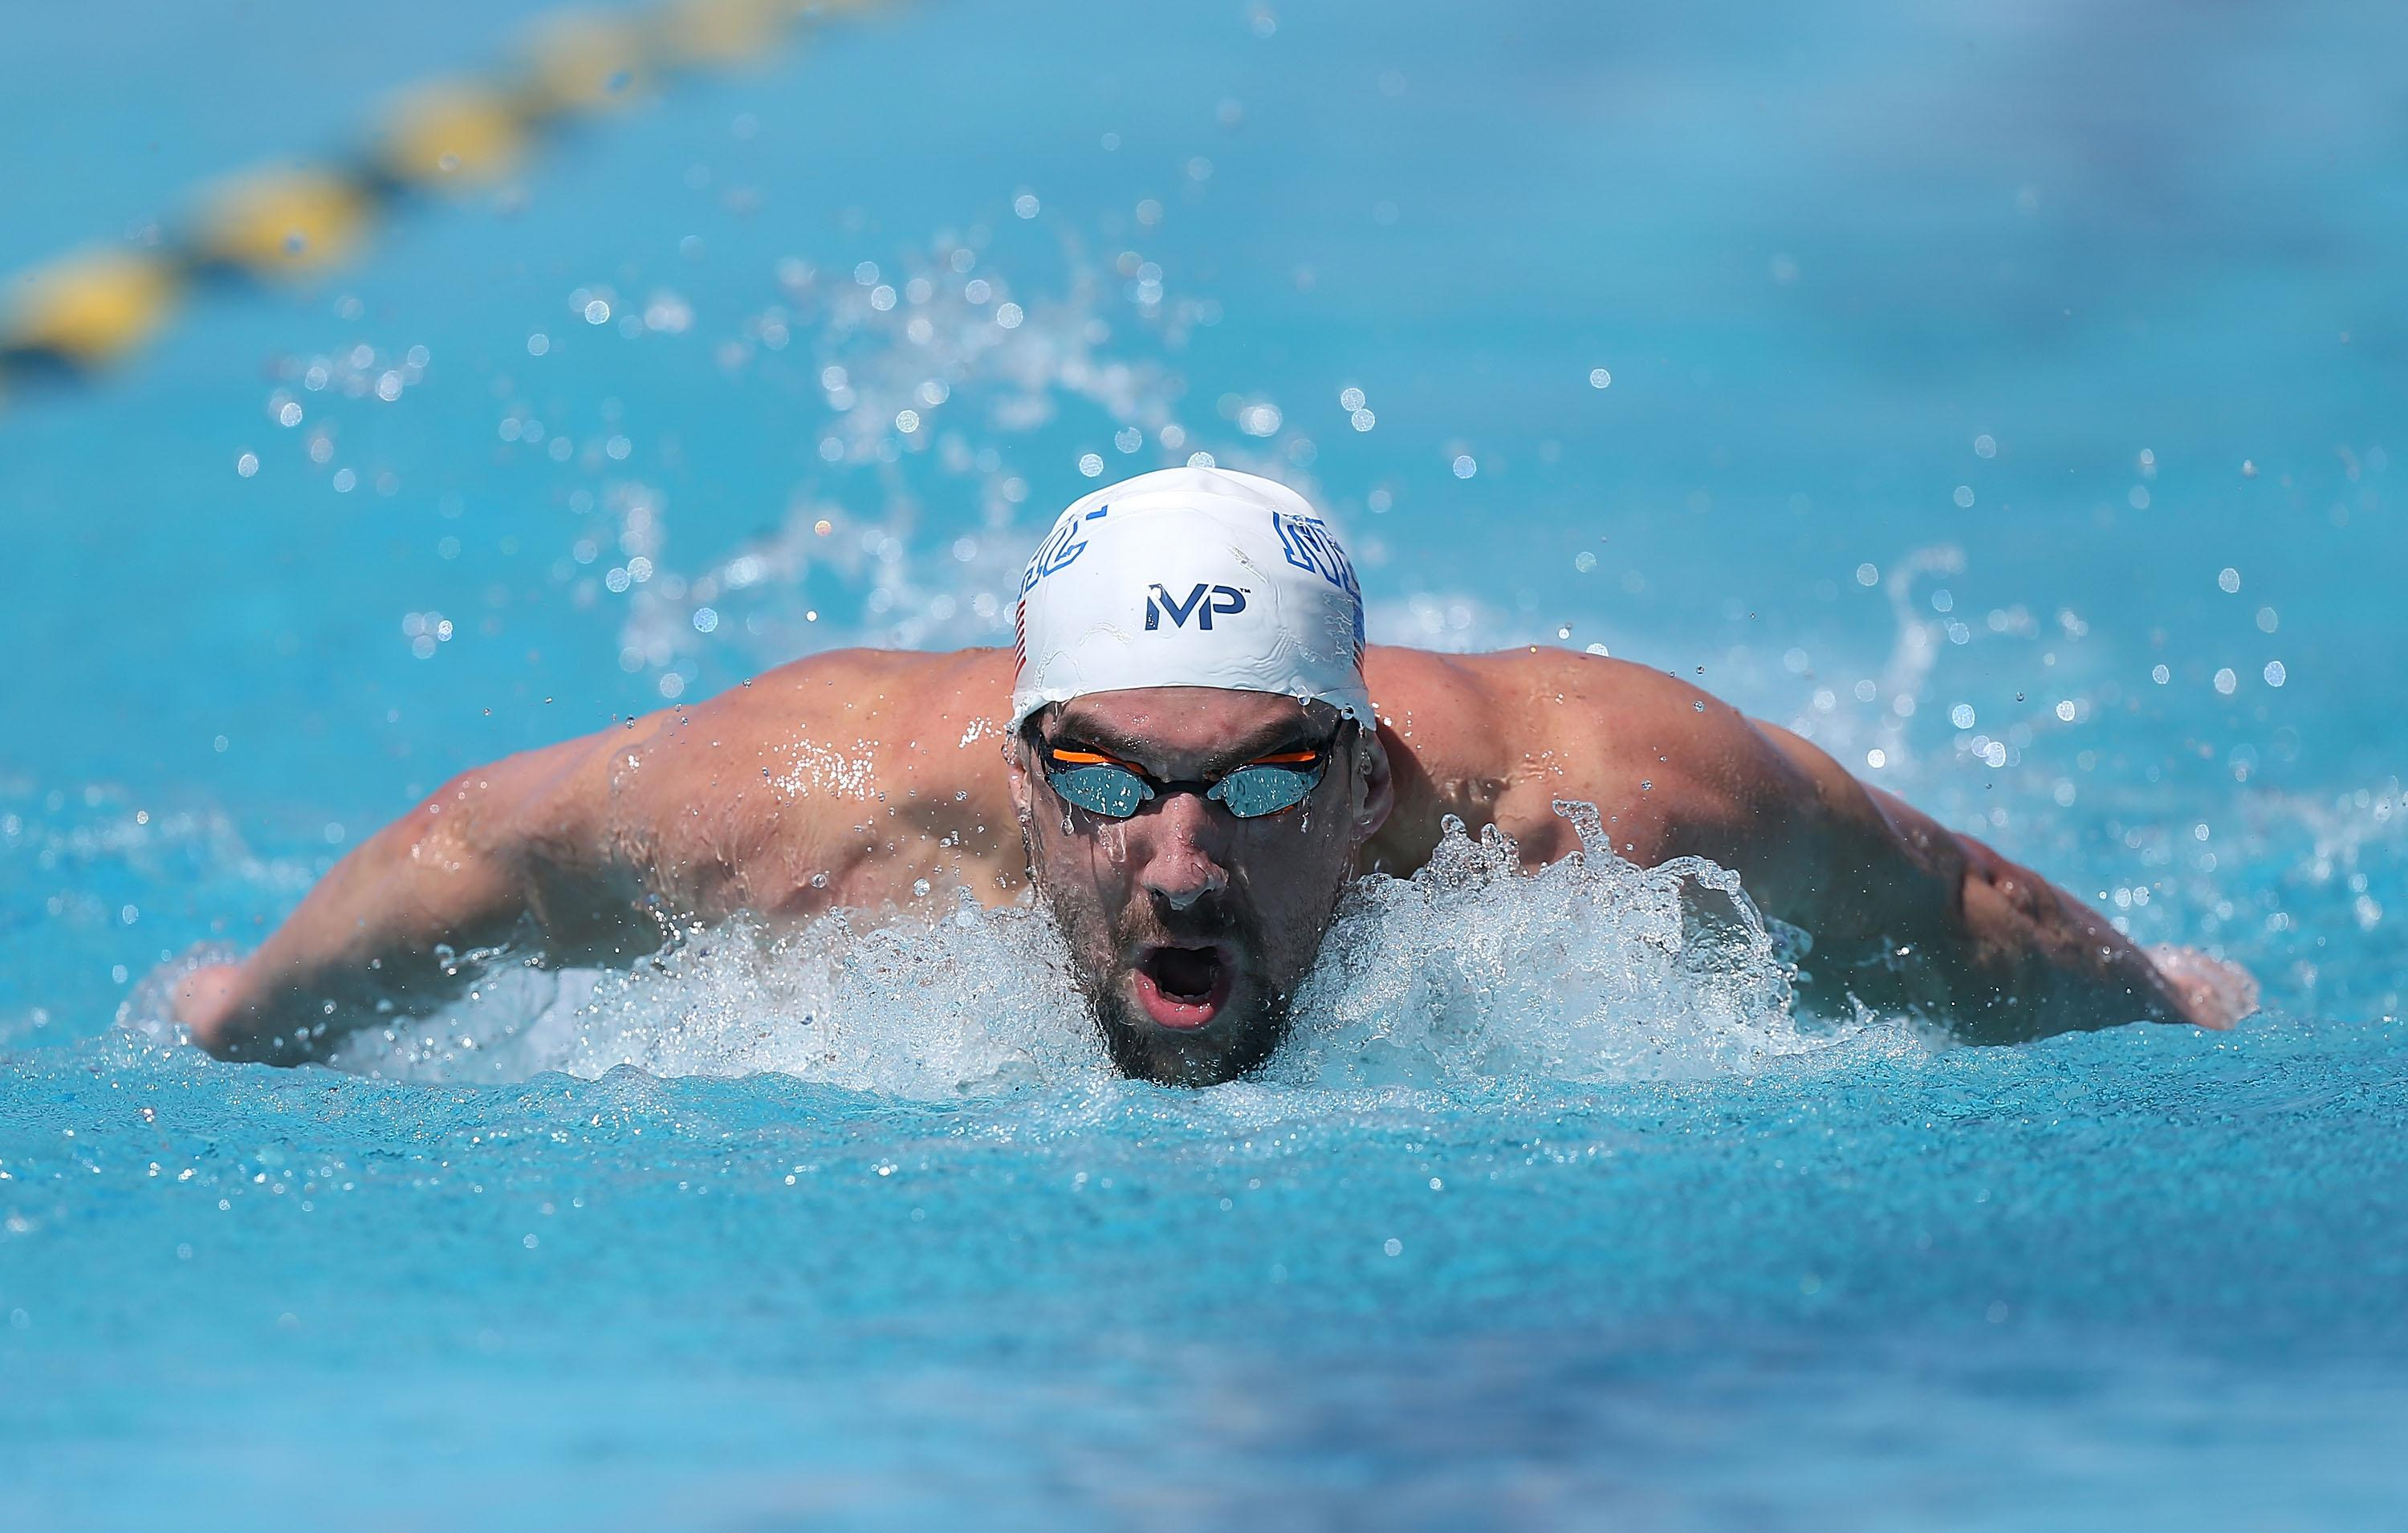 Phelps fastest in return to racing